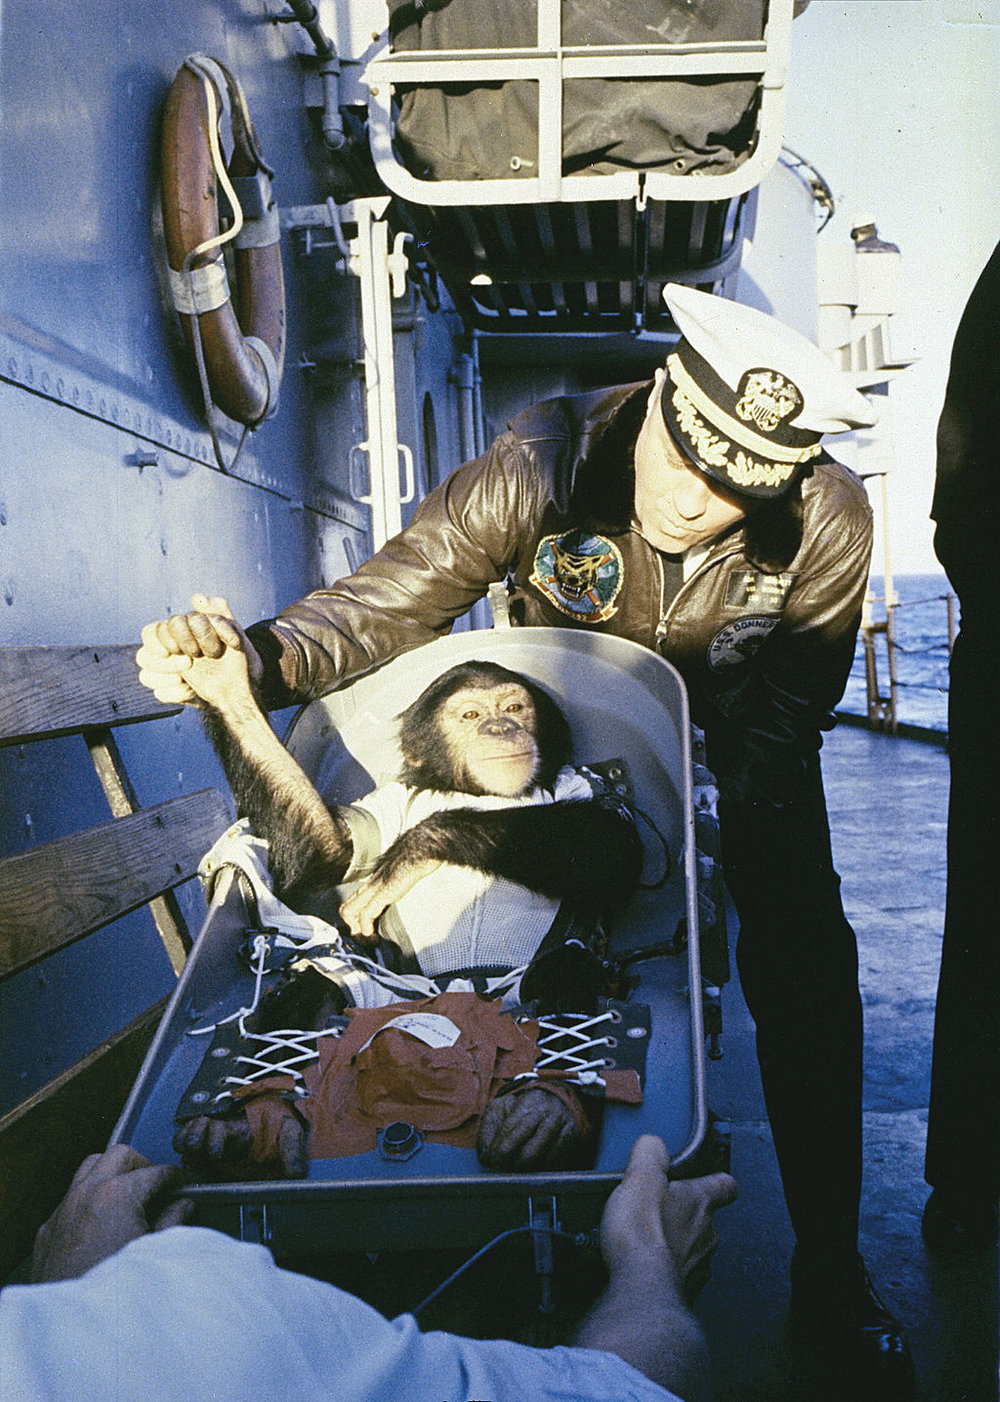 Ham the chimp is welcomed back with a 'handshake' after his January 1961 flight on the Mercury Redstone rocket.